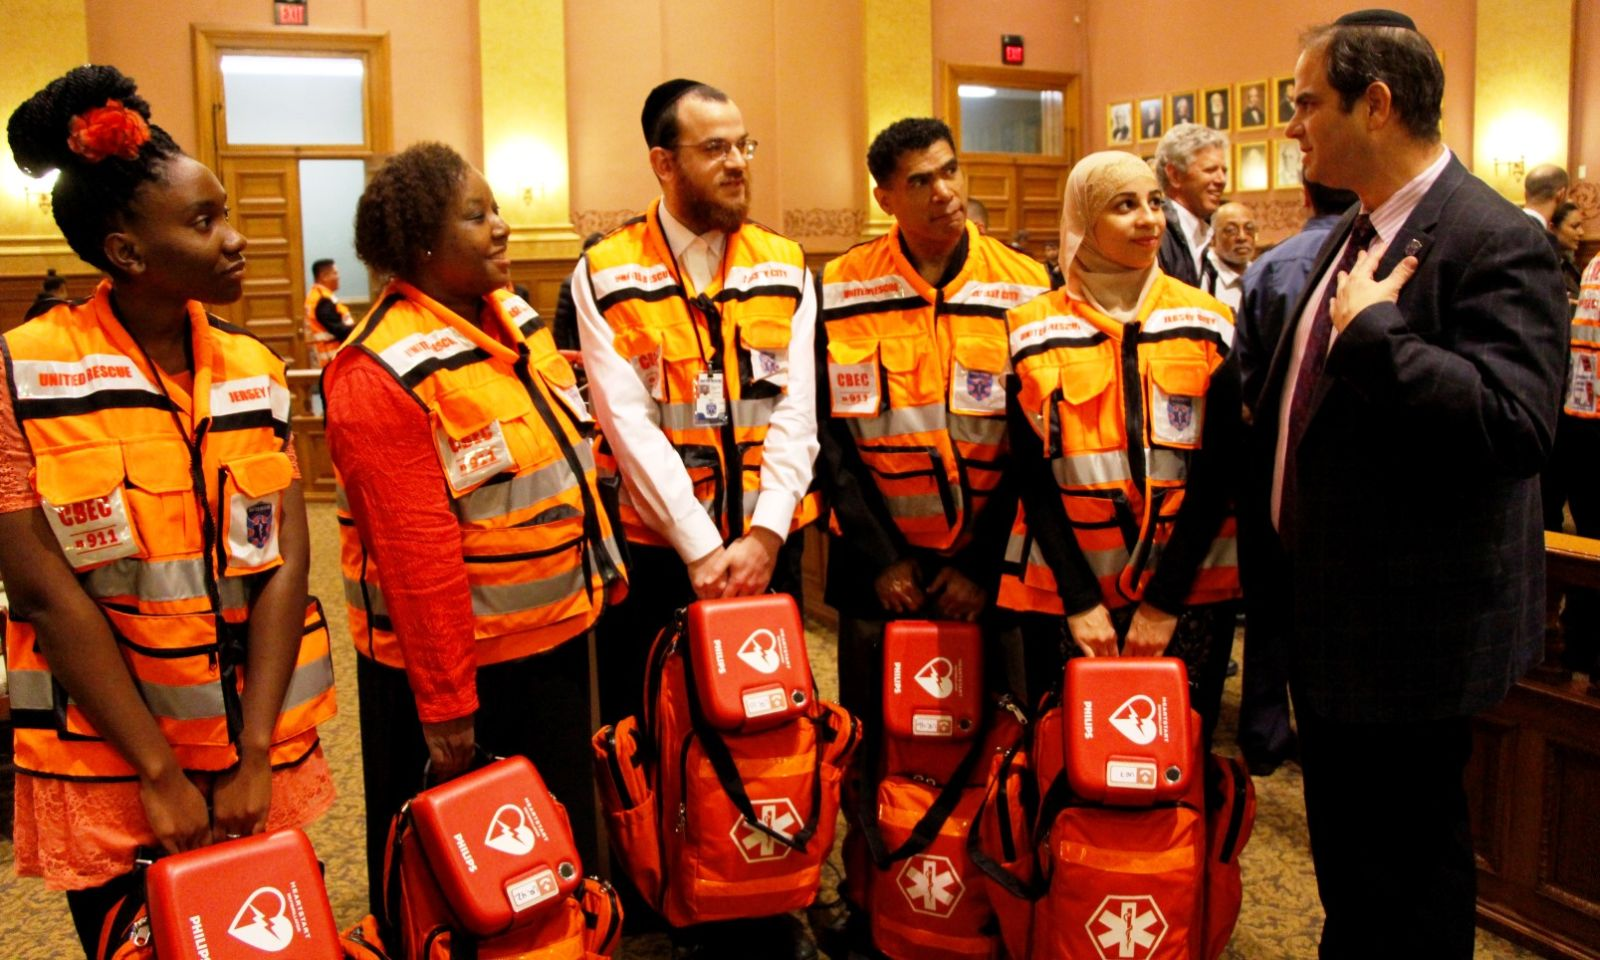 United Hatzalah founder Eli Beer with the first graduating class of volunteer first-responders in Jersey City, New Jersey. Photo by Yadin Goldman